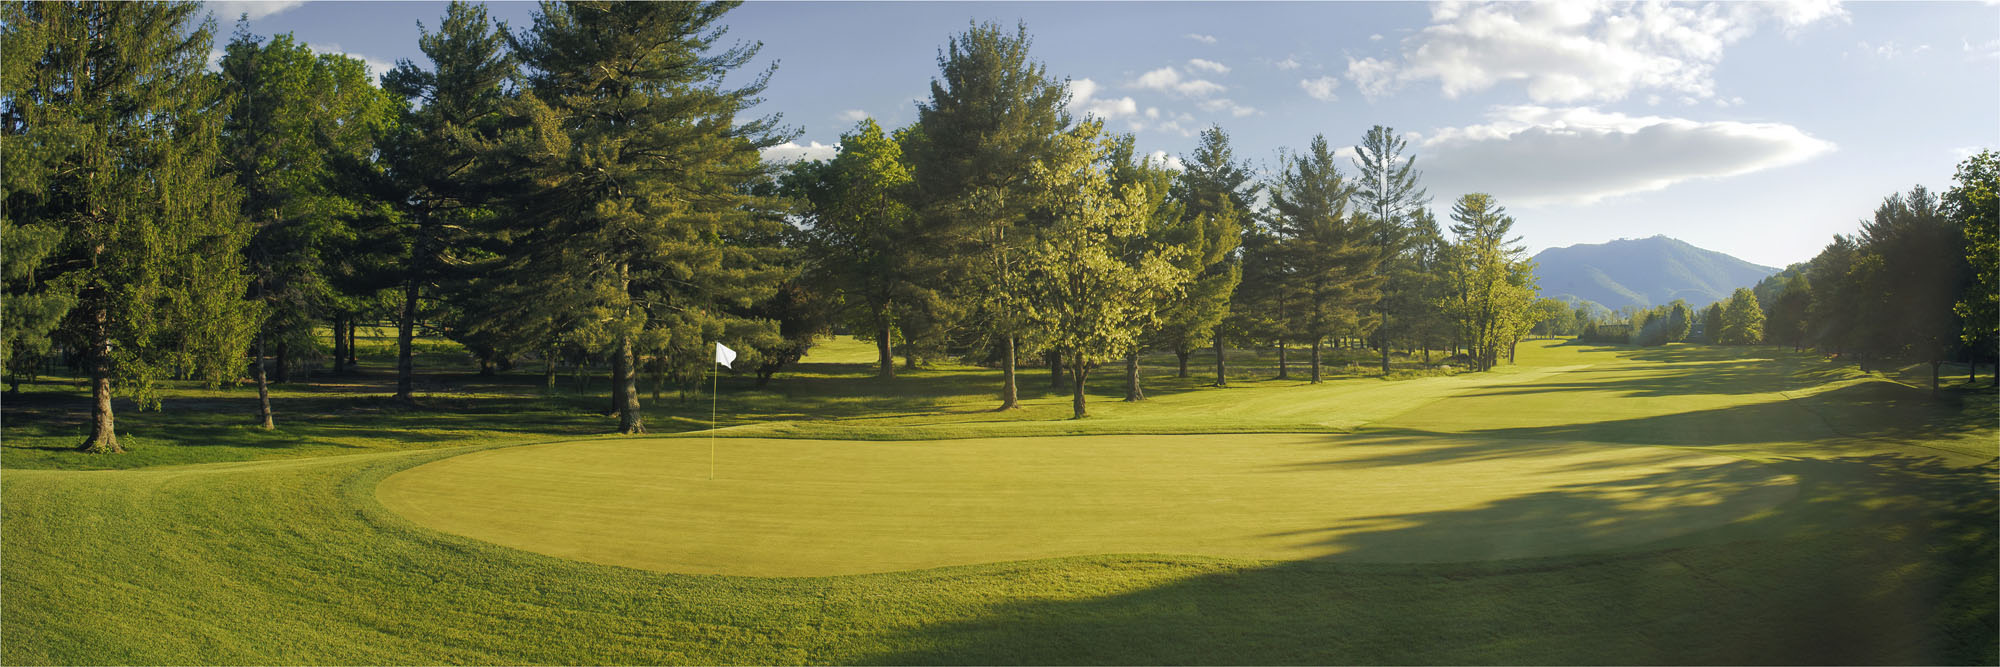 Golf Course Image - The Greenbrier Meadows Club No. 17